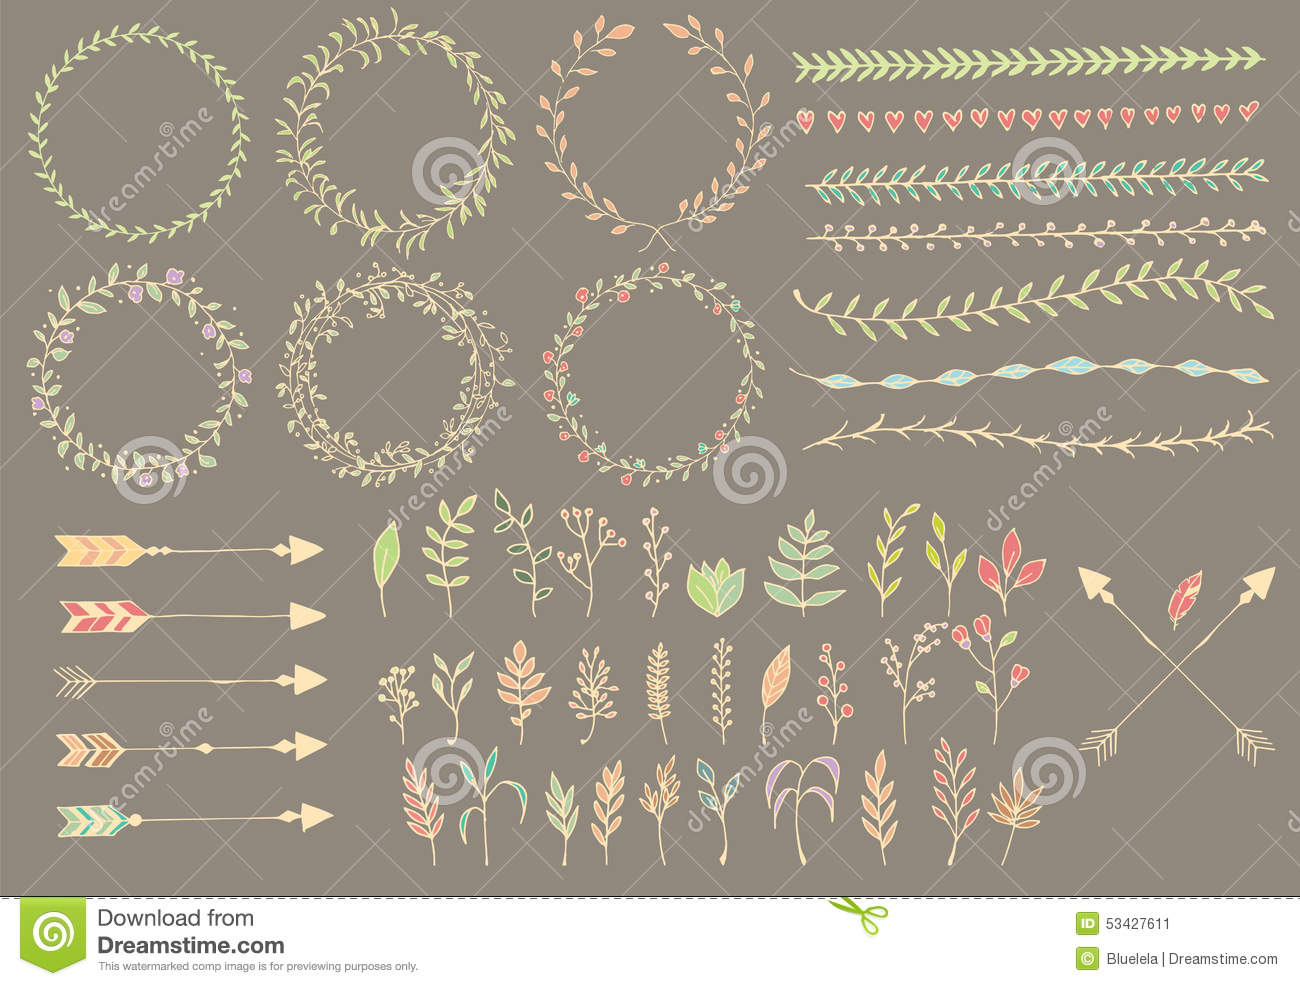 Hand Drawn Vintage Arrows Feathers Dividers And Floral Elements Stock Vector Image 53427611